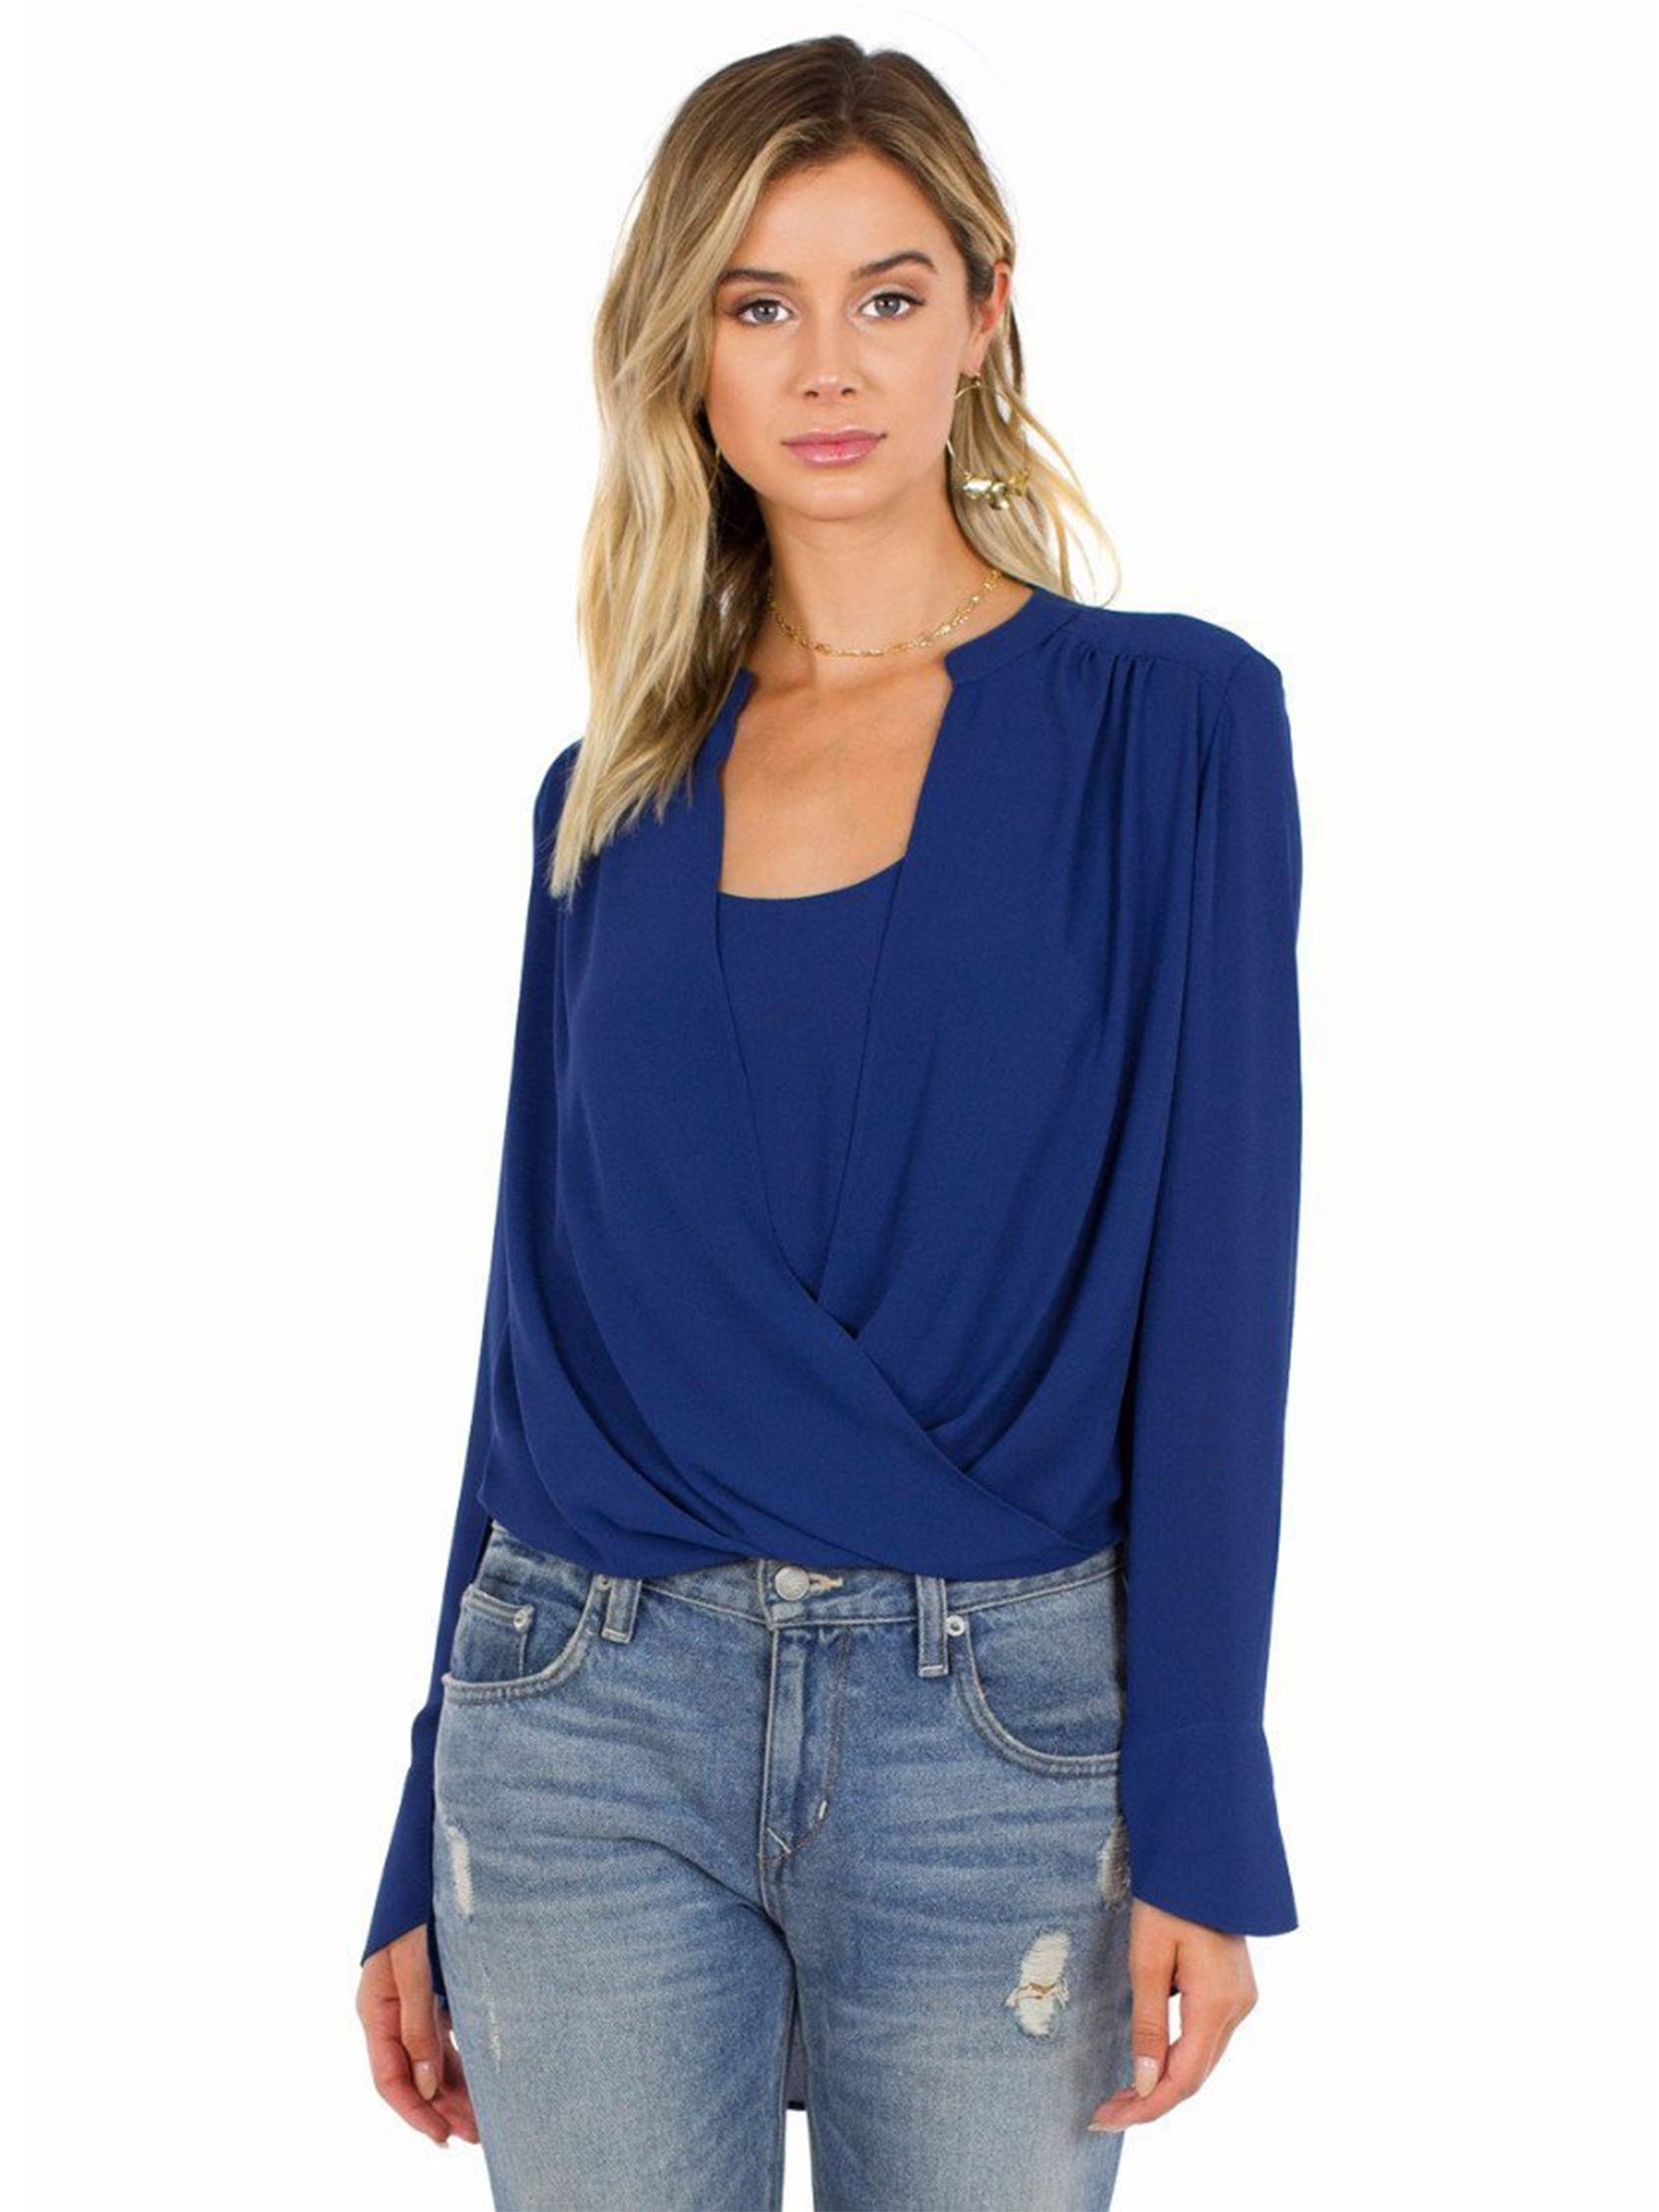 Girl outfit in a top rental from BCBGMAXAZRIA called Jaklyn Draped-front Blouse